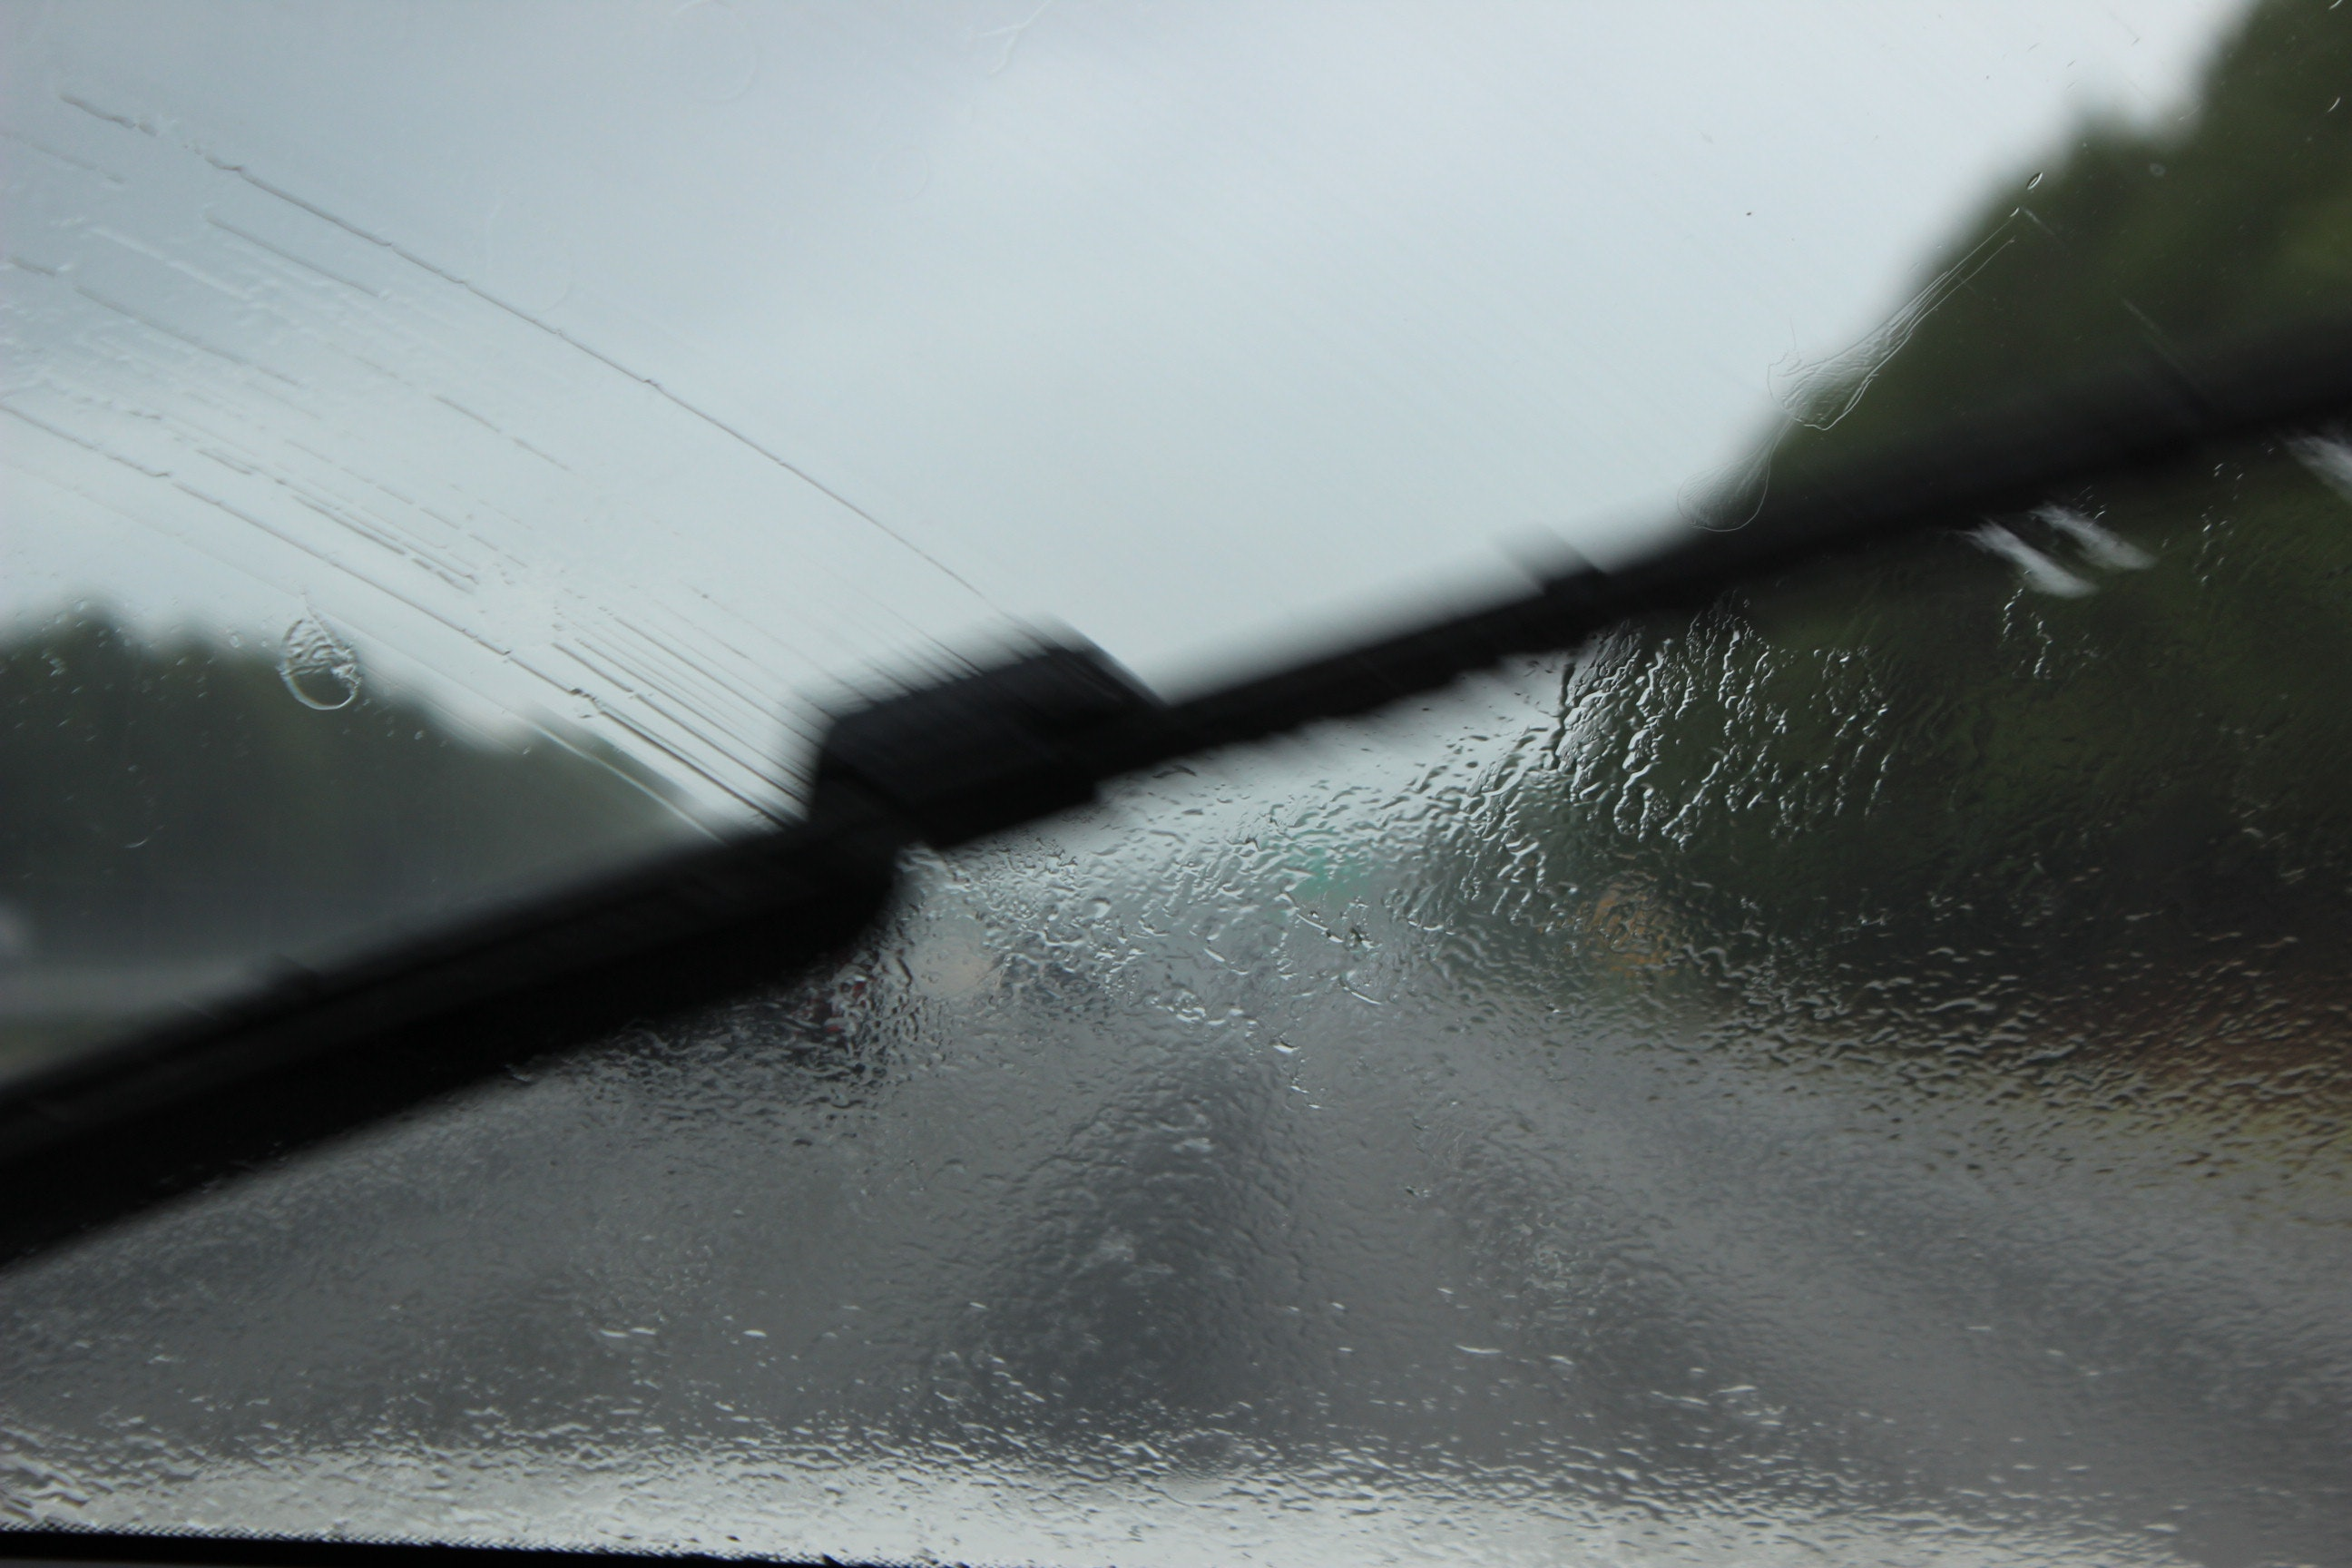 An Image Showing Vehicle Windscreen Wipers Clearing the Windscreen